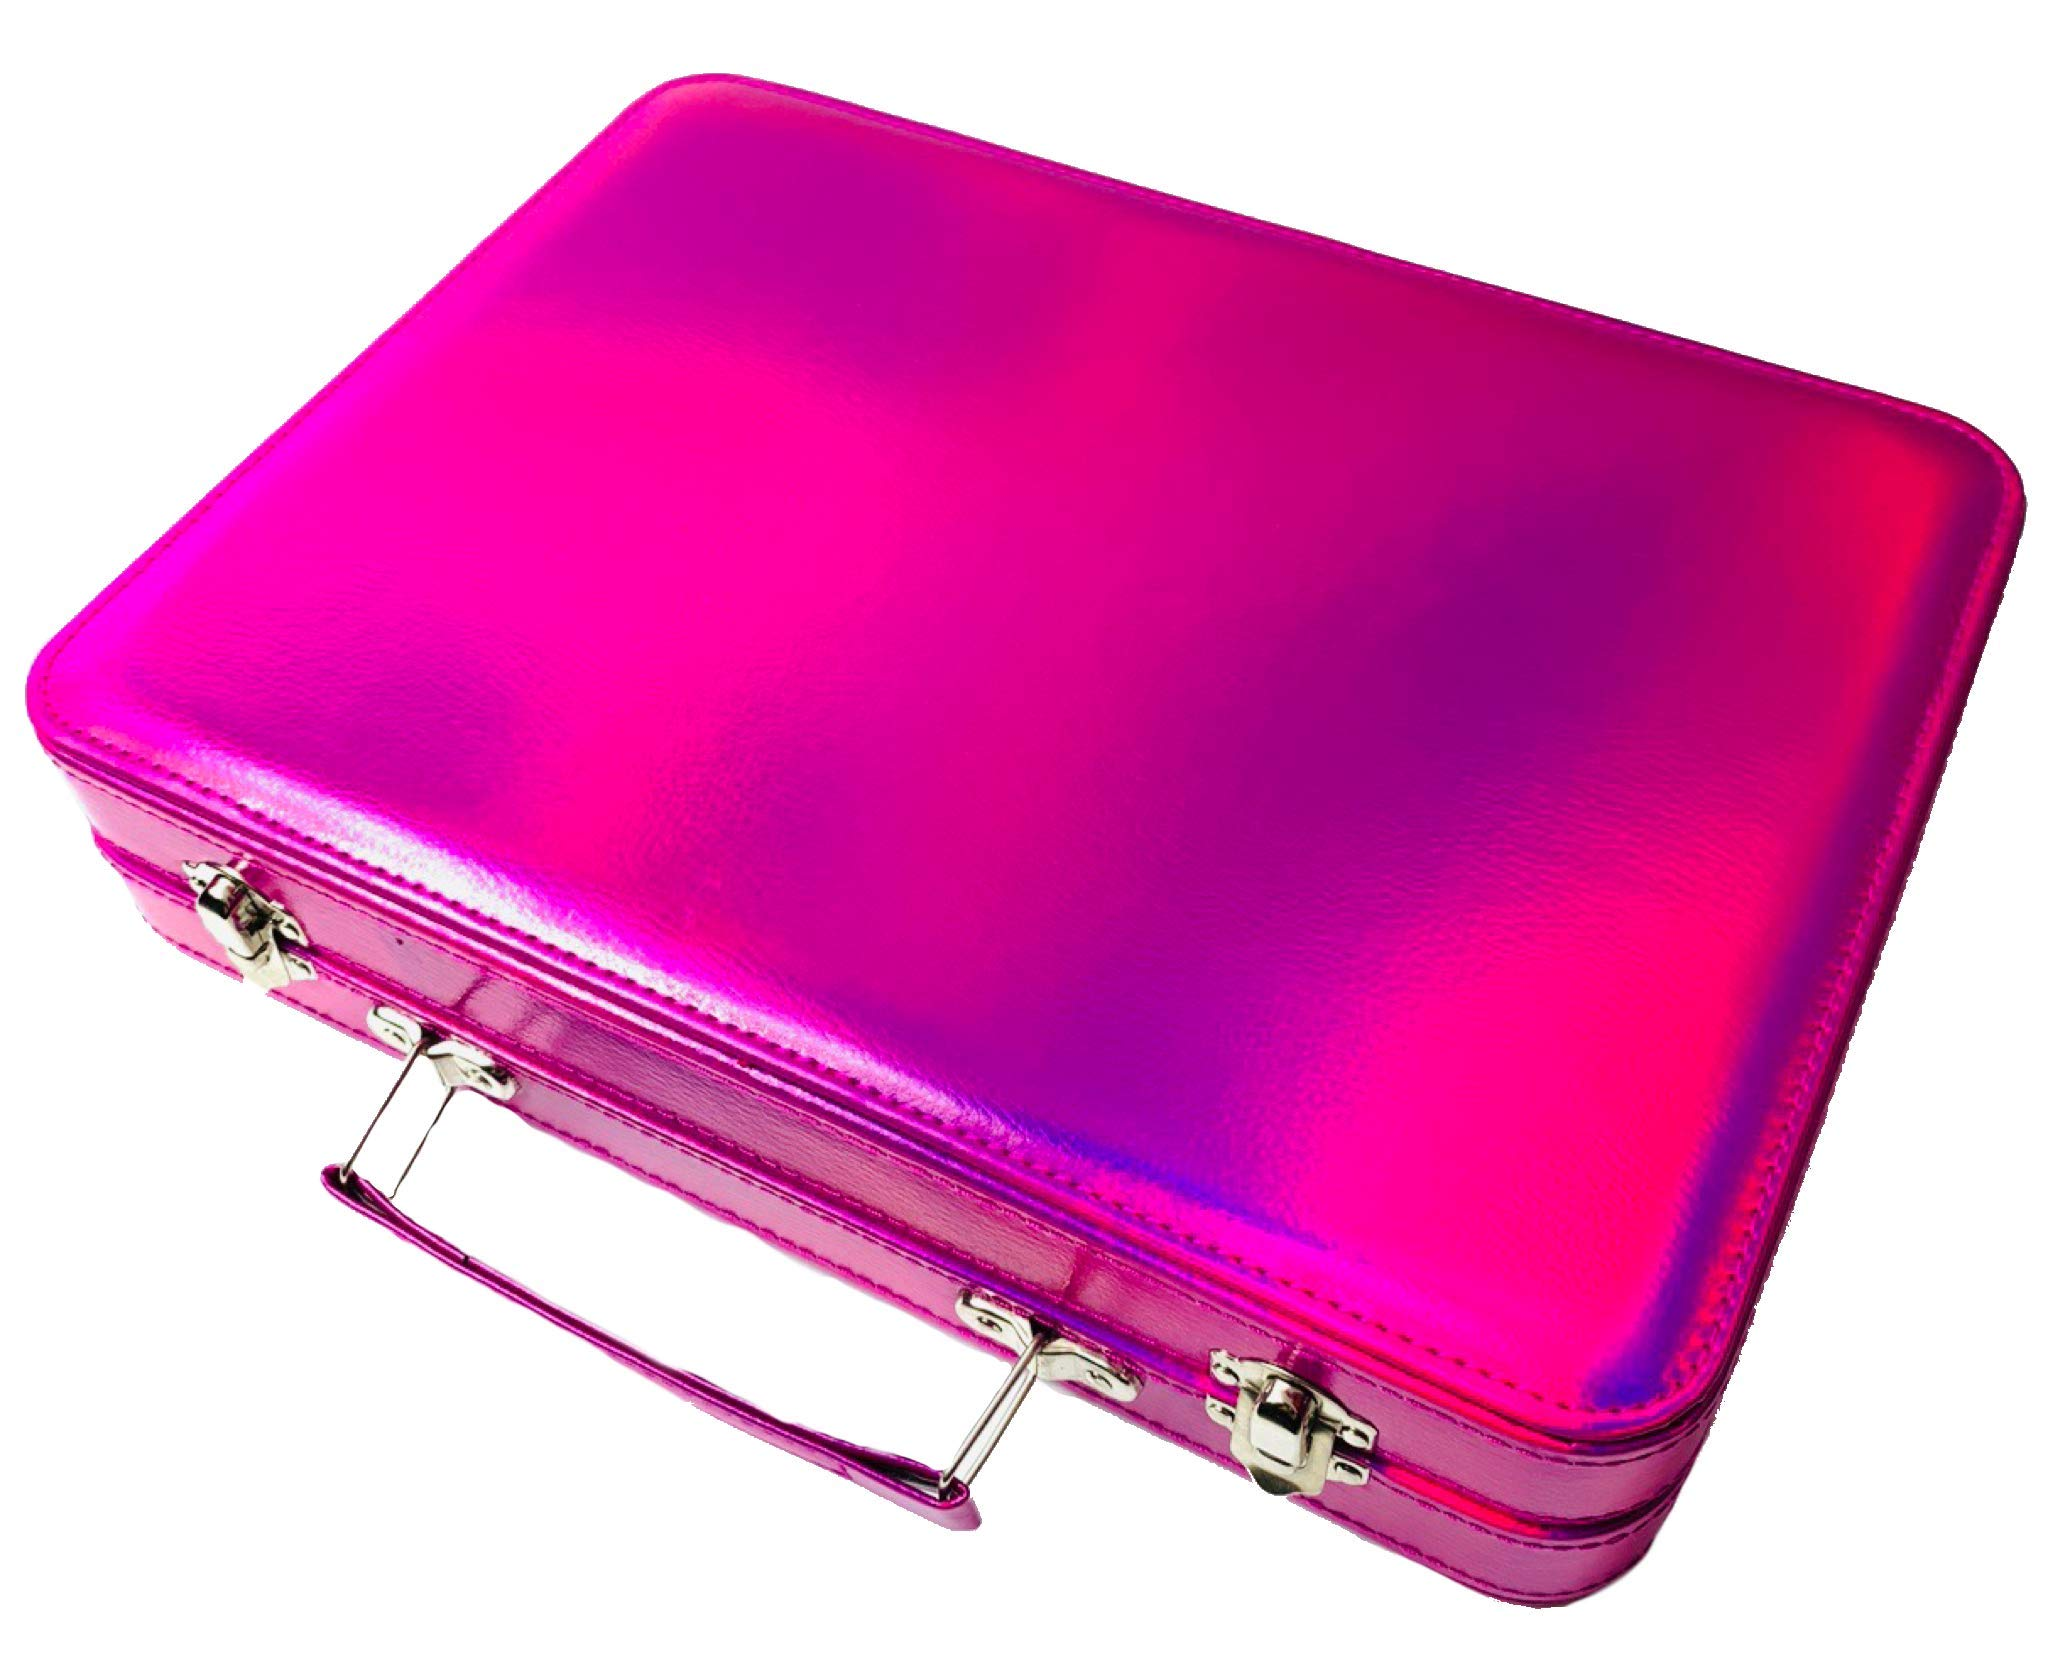 BR Carry All Trunk Professional Makeup Kit - Eyeshadow, Eyeliner, Lip Stick All In One Clear Case (RedCase) by BR (Image #5)